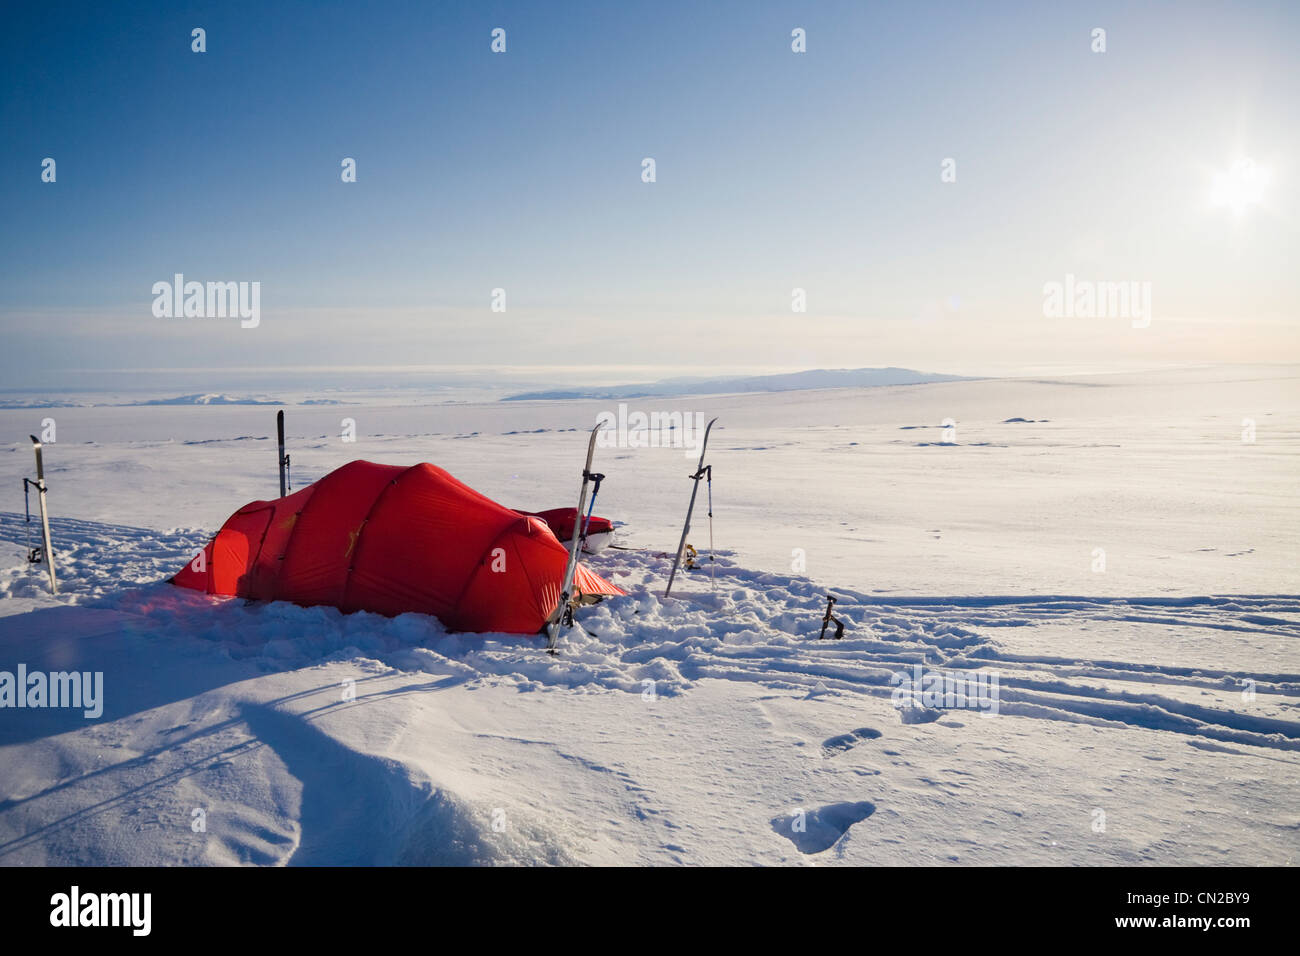 Polar-Expedition Zelt am Inlandeis, Grönland Stockbild